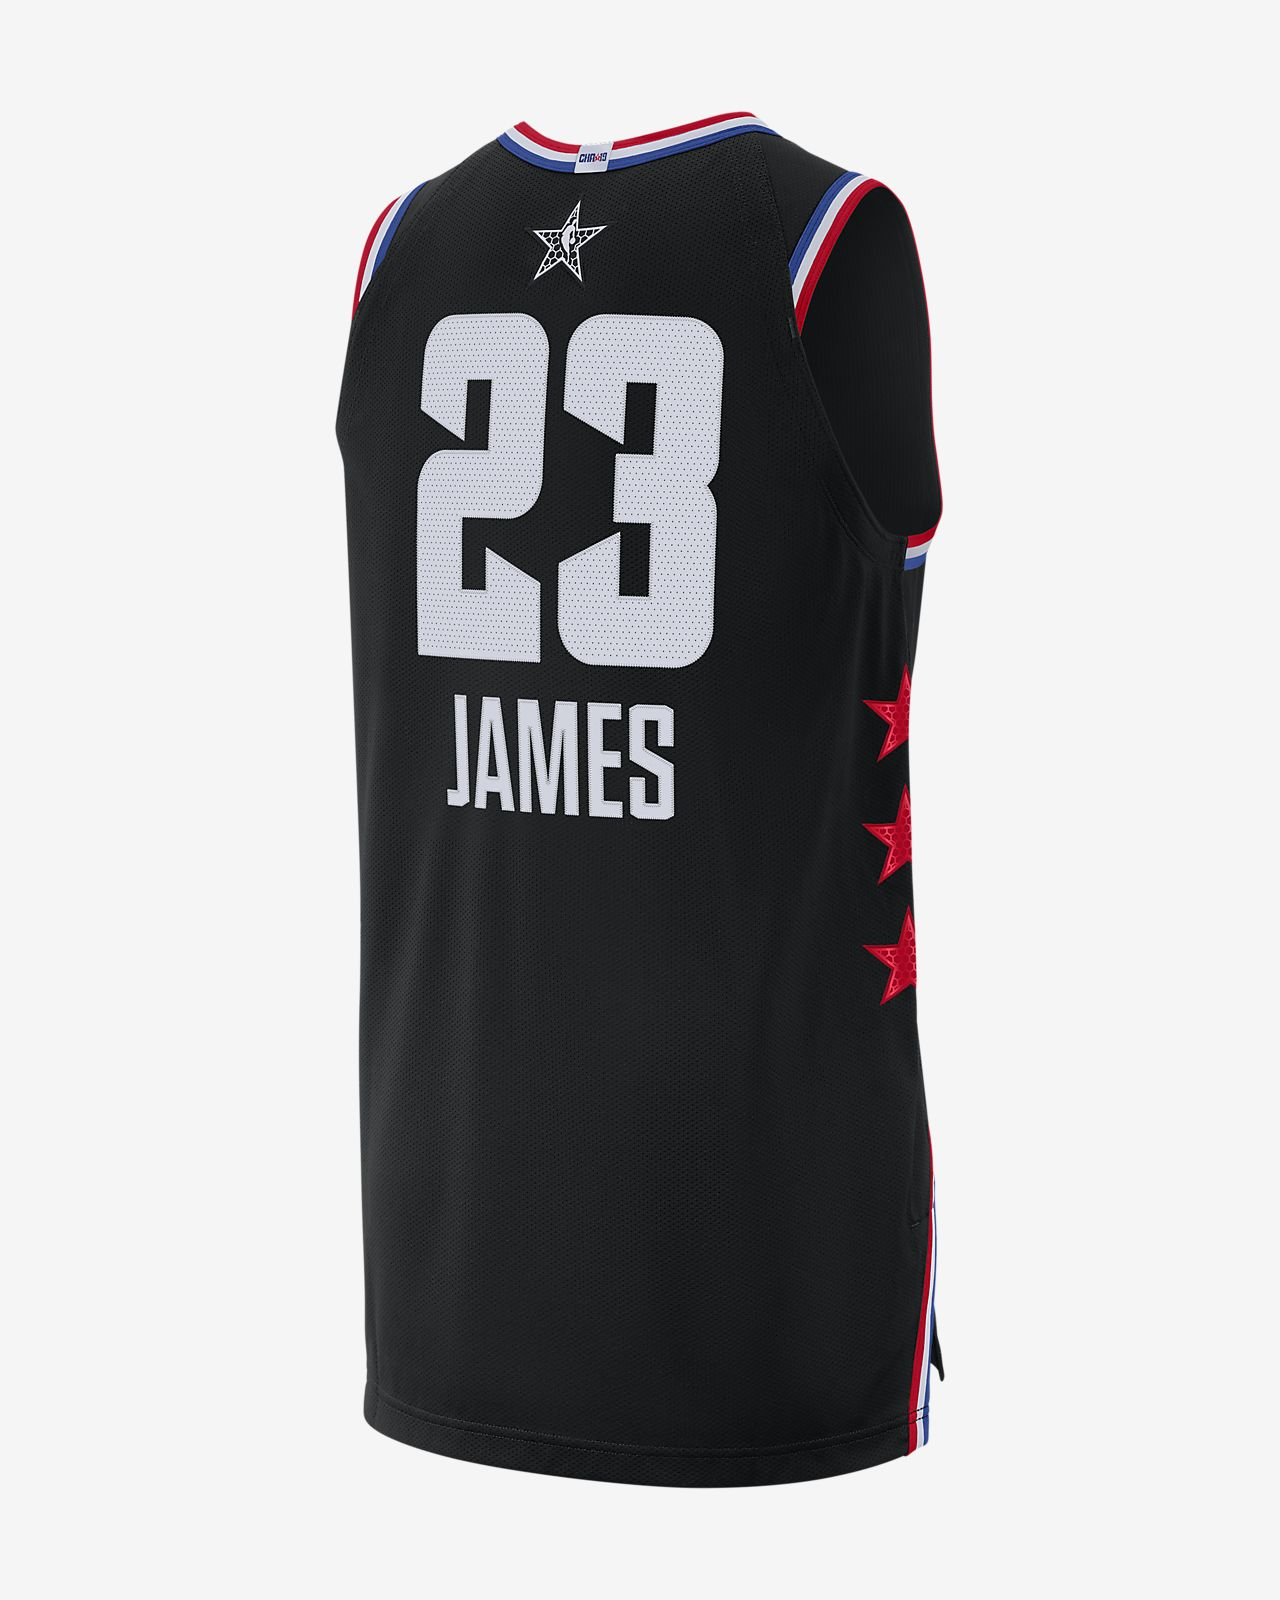 5567c807c64cf6 ... LeBron James All-Star Edition Authentic Men s Jordan NBA Connected  Jersey